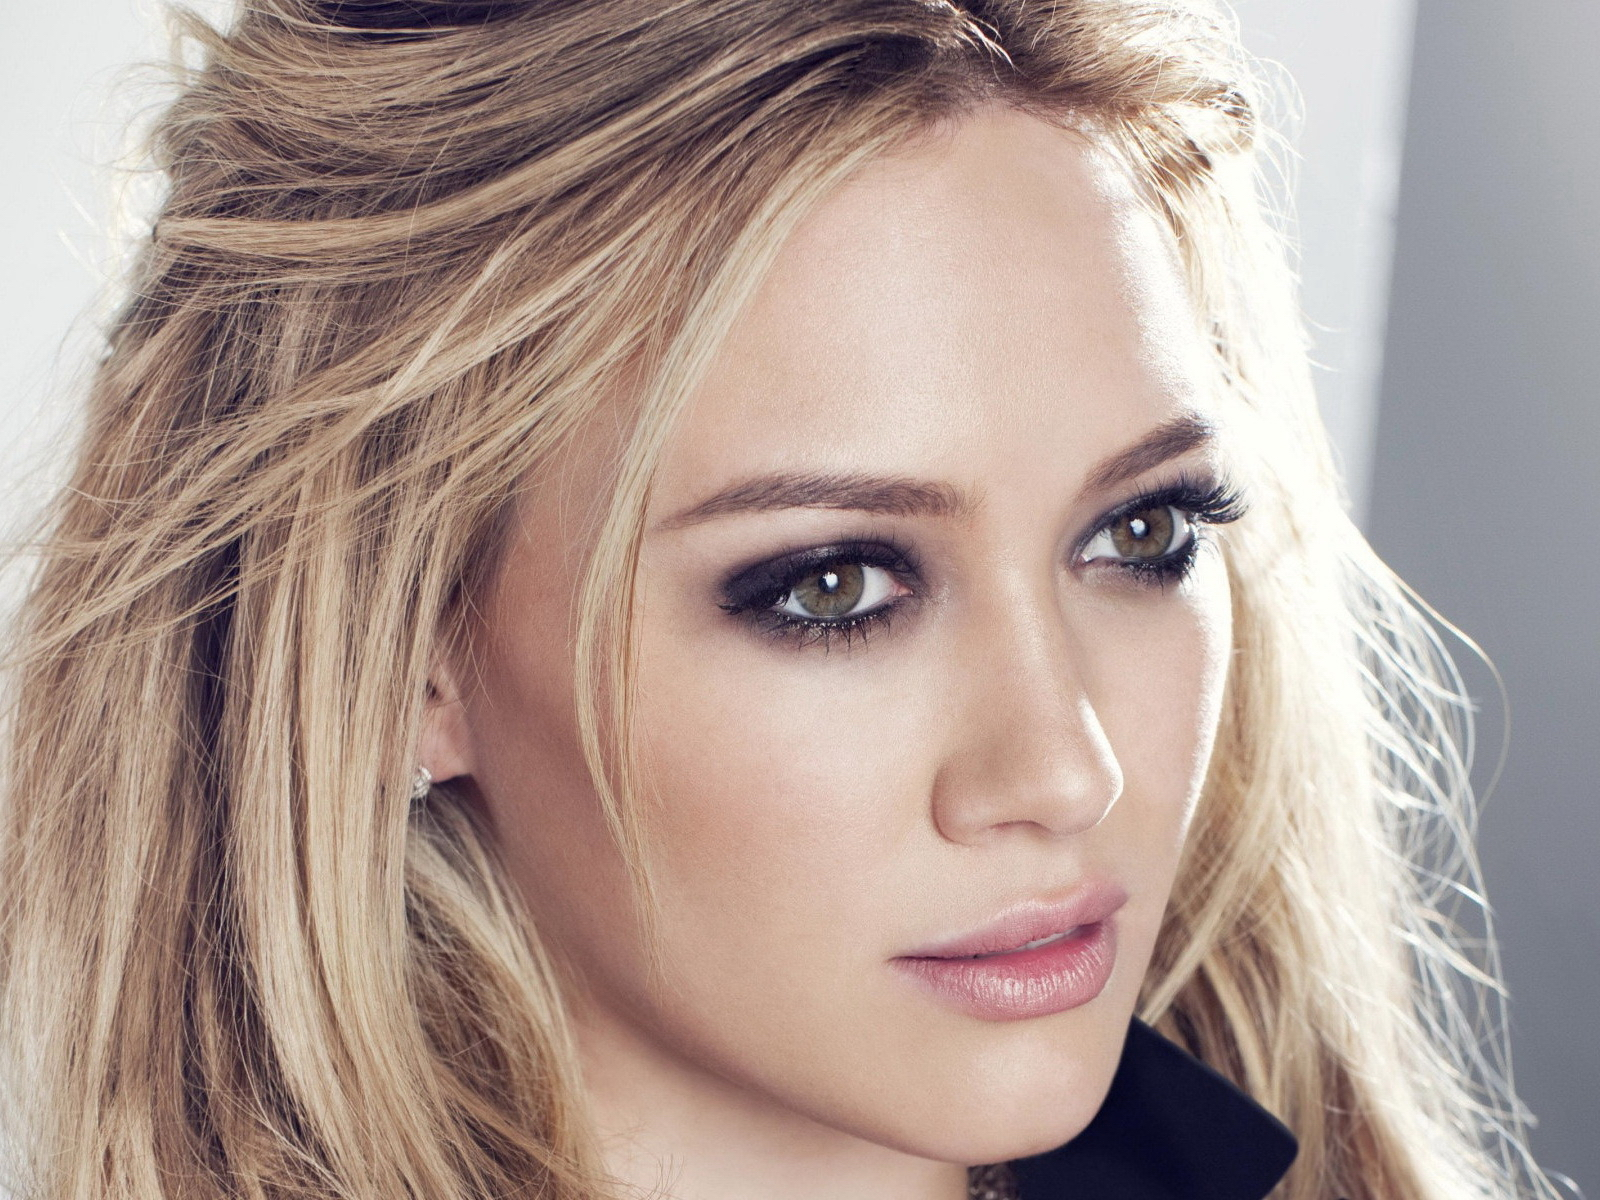 Wallpapers | Images | Picpile: Hollywood Actress HD